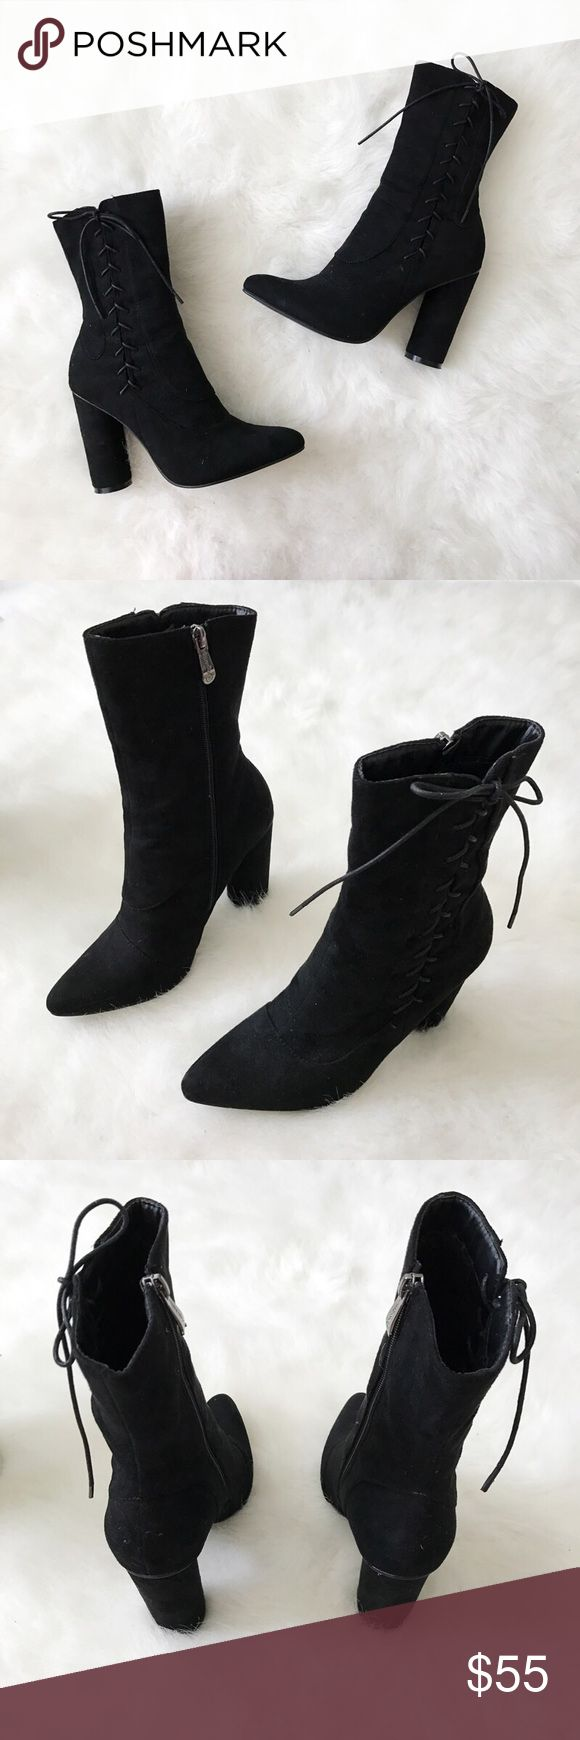 Soft Heel Black Booties🖤 Soft Heel Black Booties🖤 Cape Robin Shoes Ankle Boots & Booties